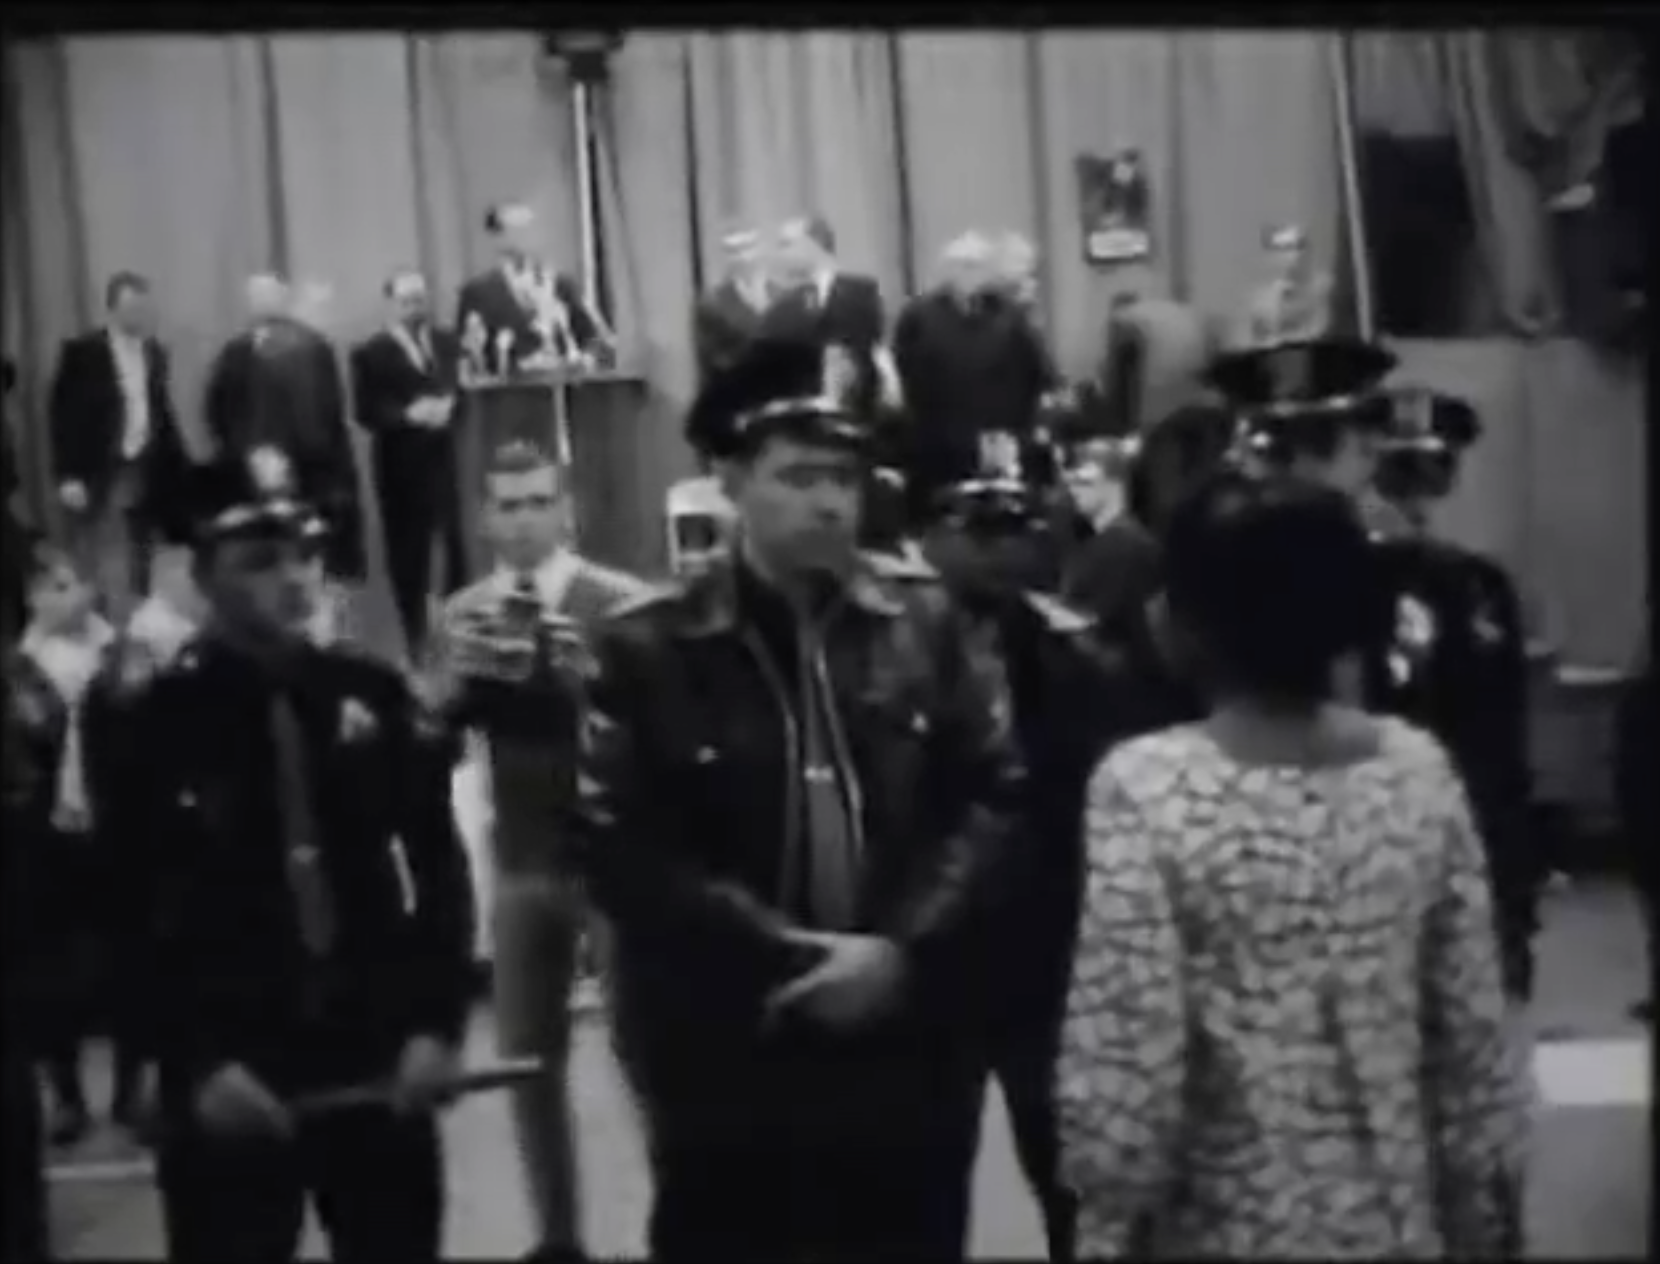 A protestor stands in front of several armed police officers protecting Alabama Governor George Wallace during a speech in Omaha, NE.